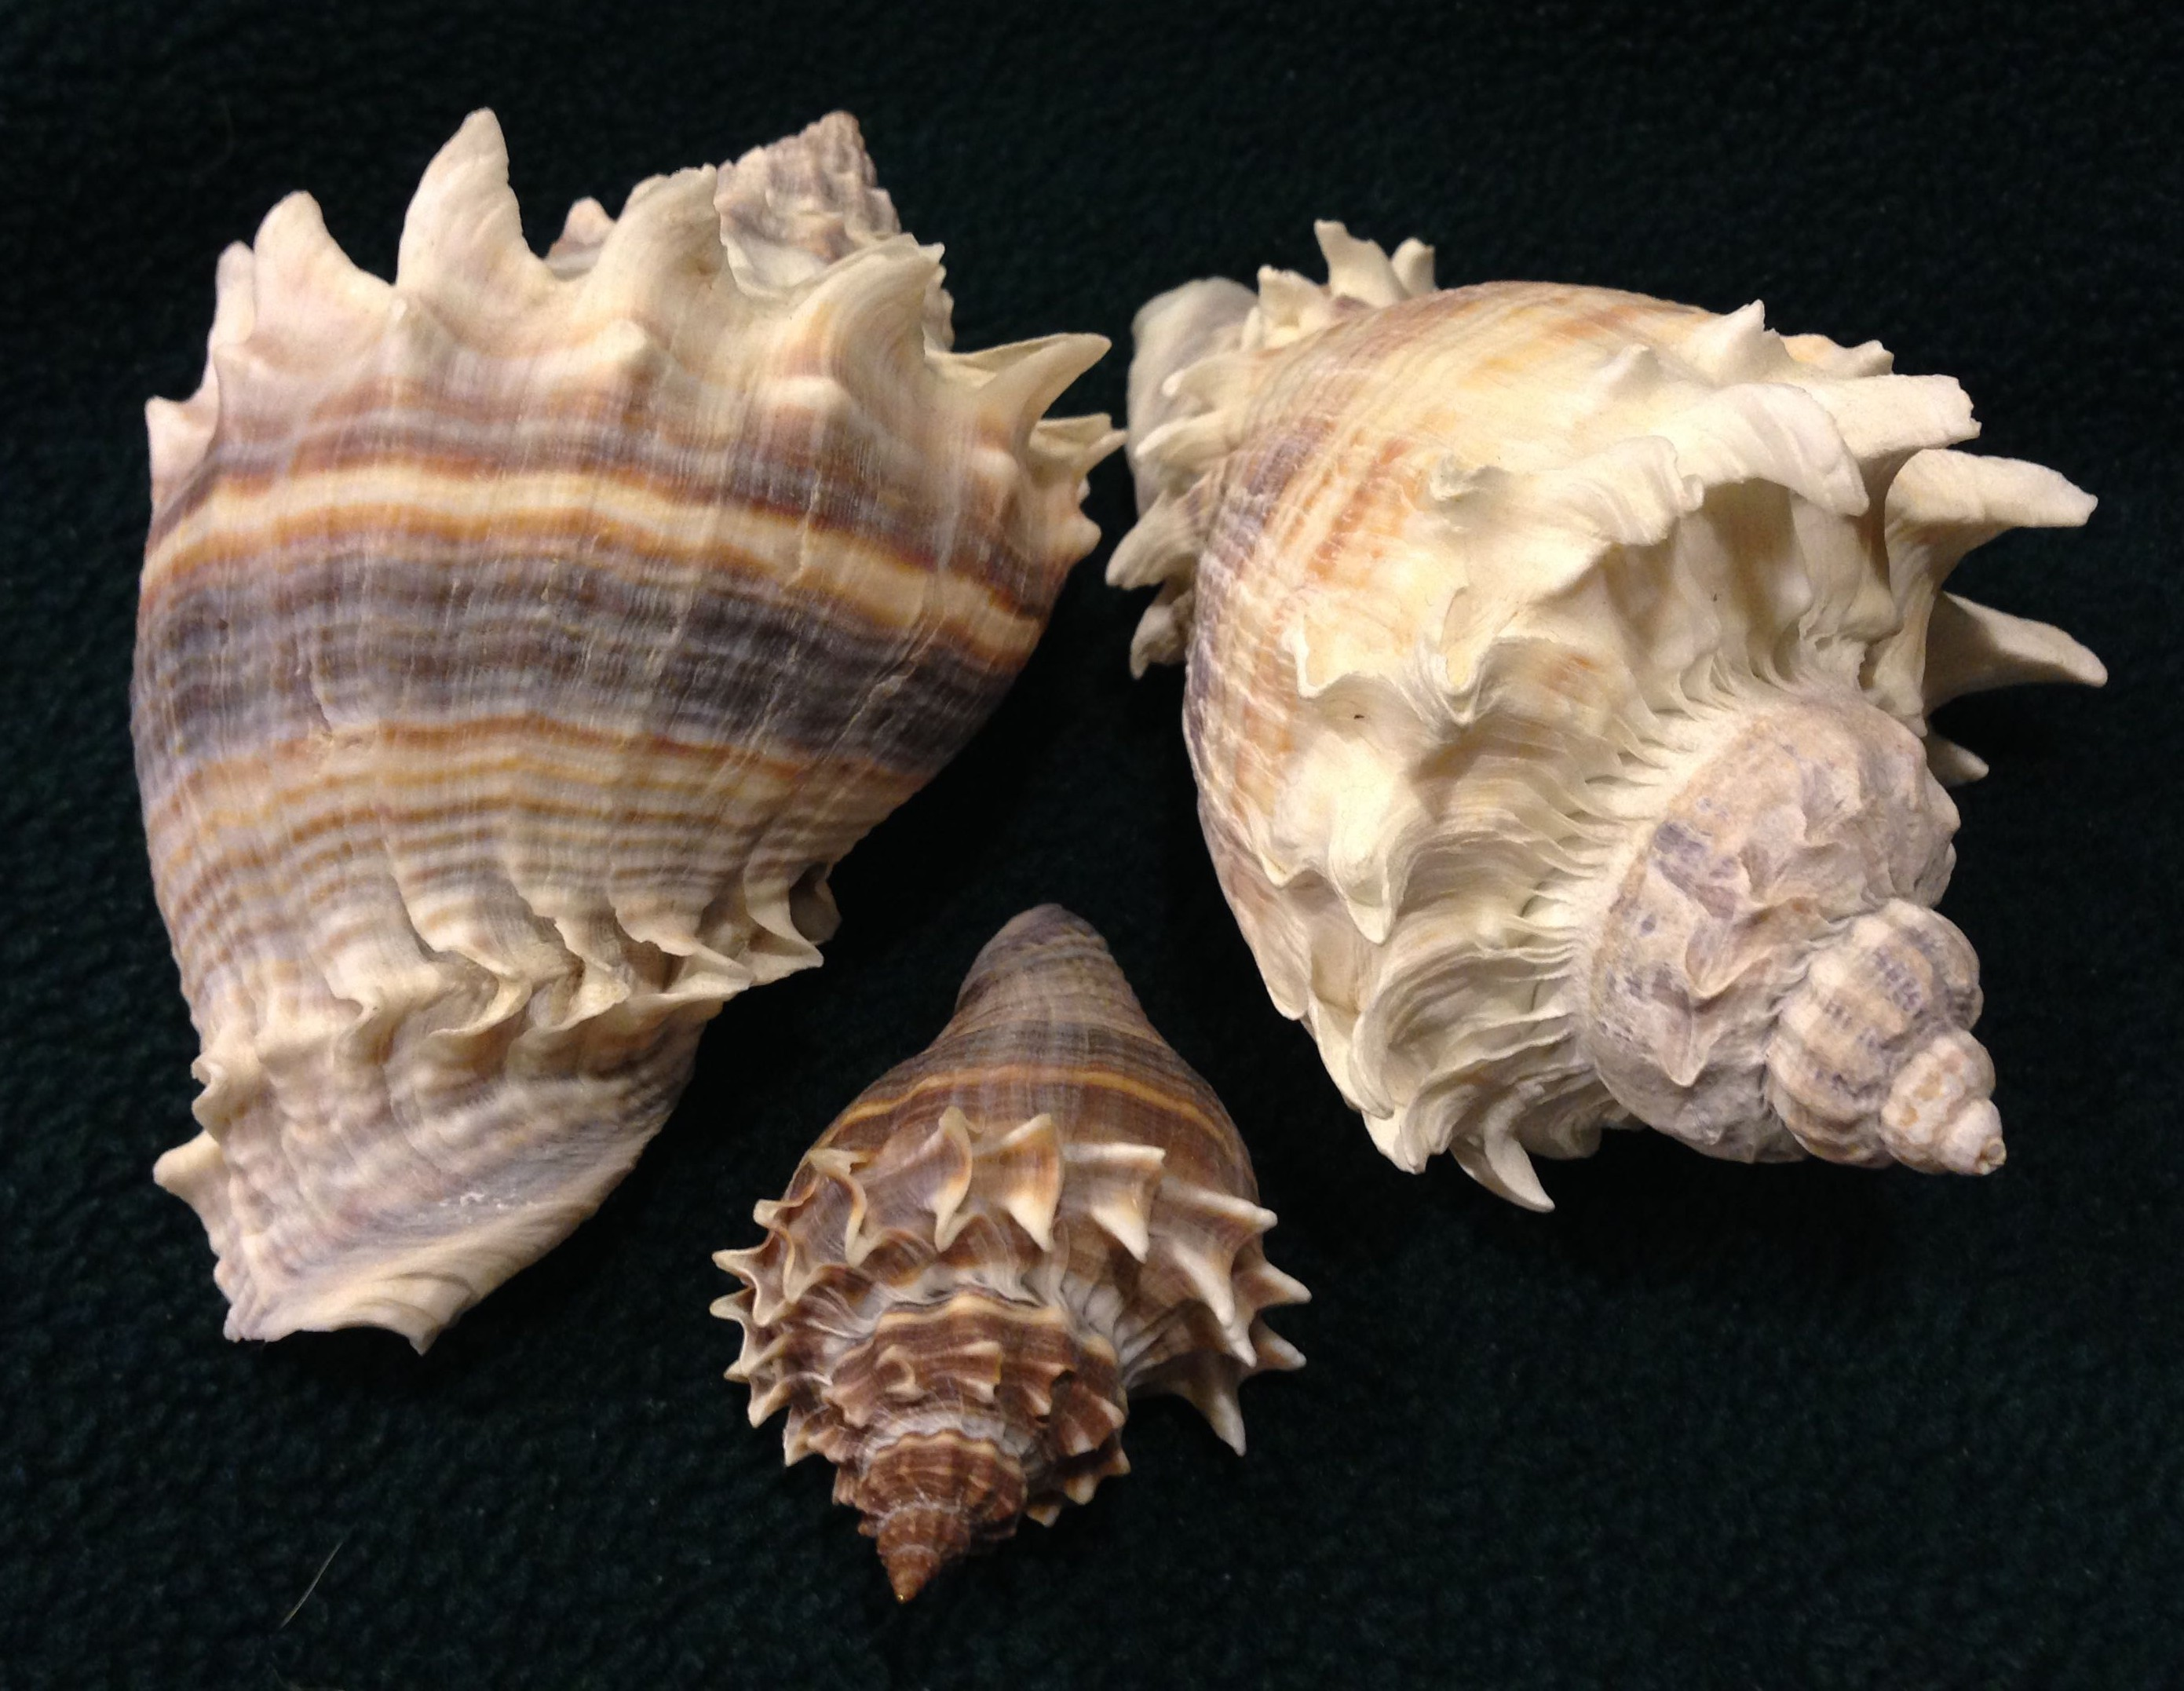 King's Crown, 2-28-15, Sanibel Island, SeaShell News & Shelling.